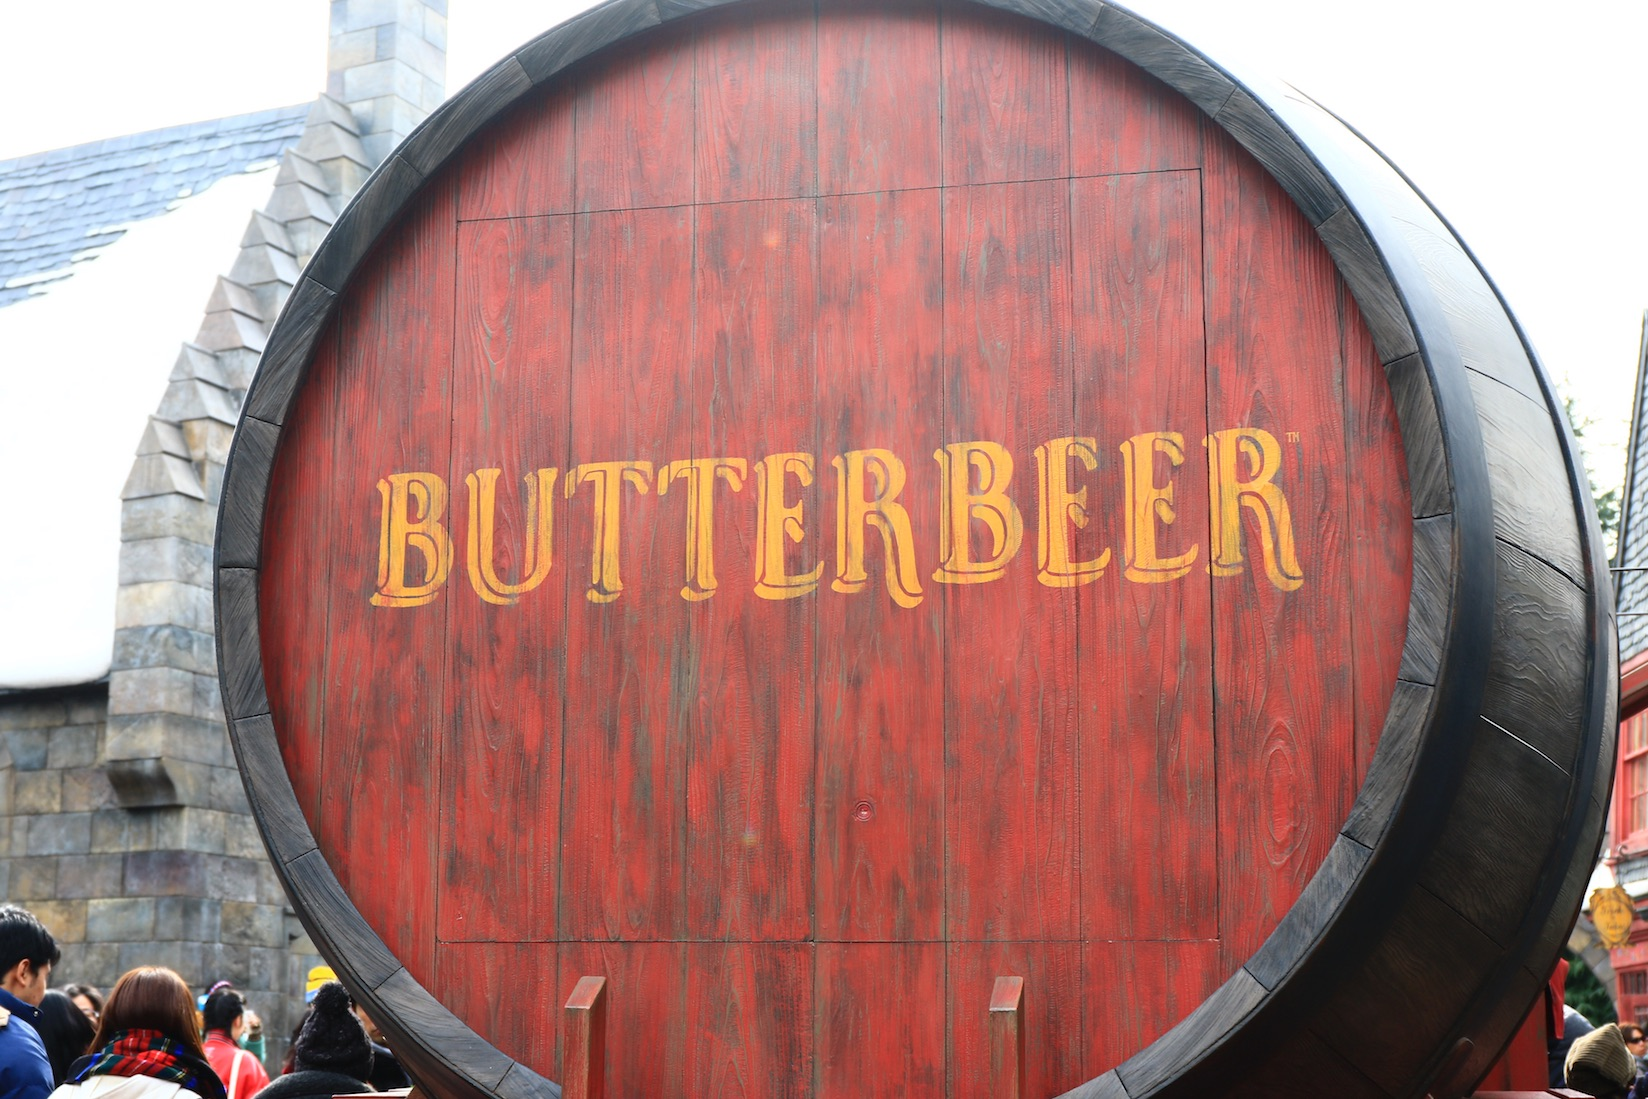 Photo of Oak Barrel Containing BUTTERBEER